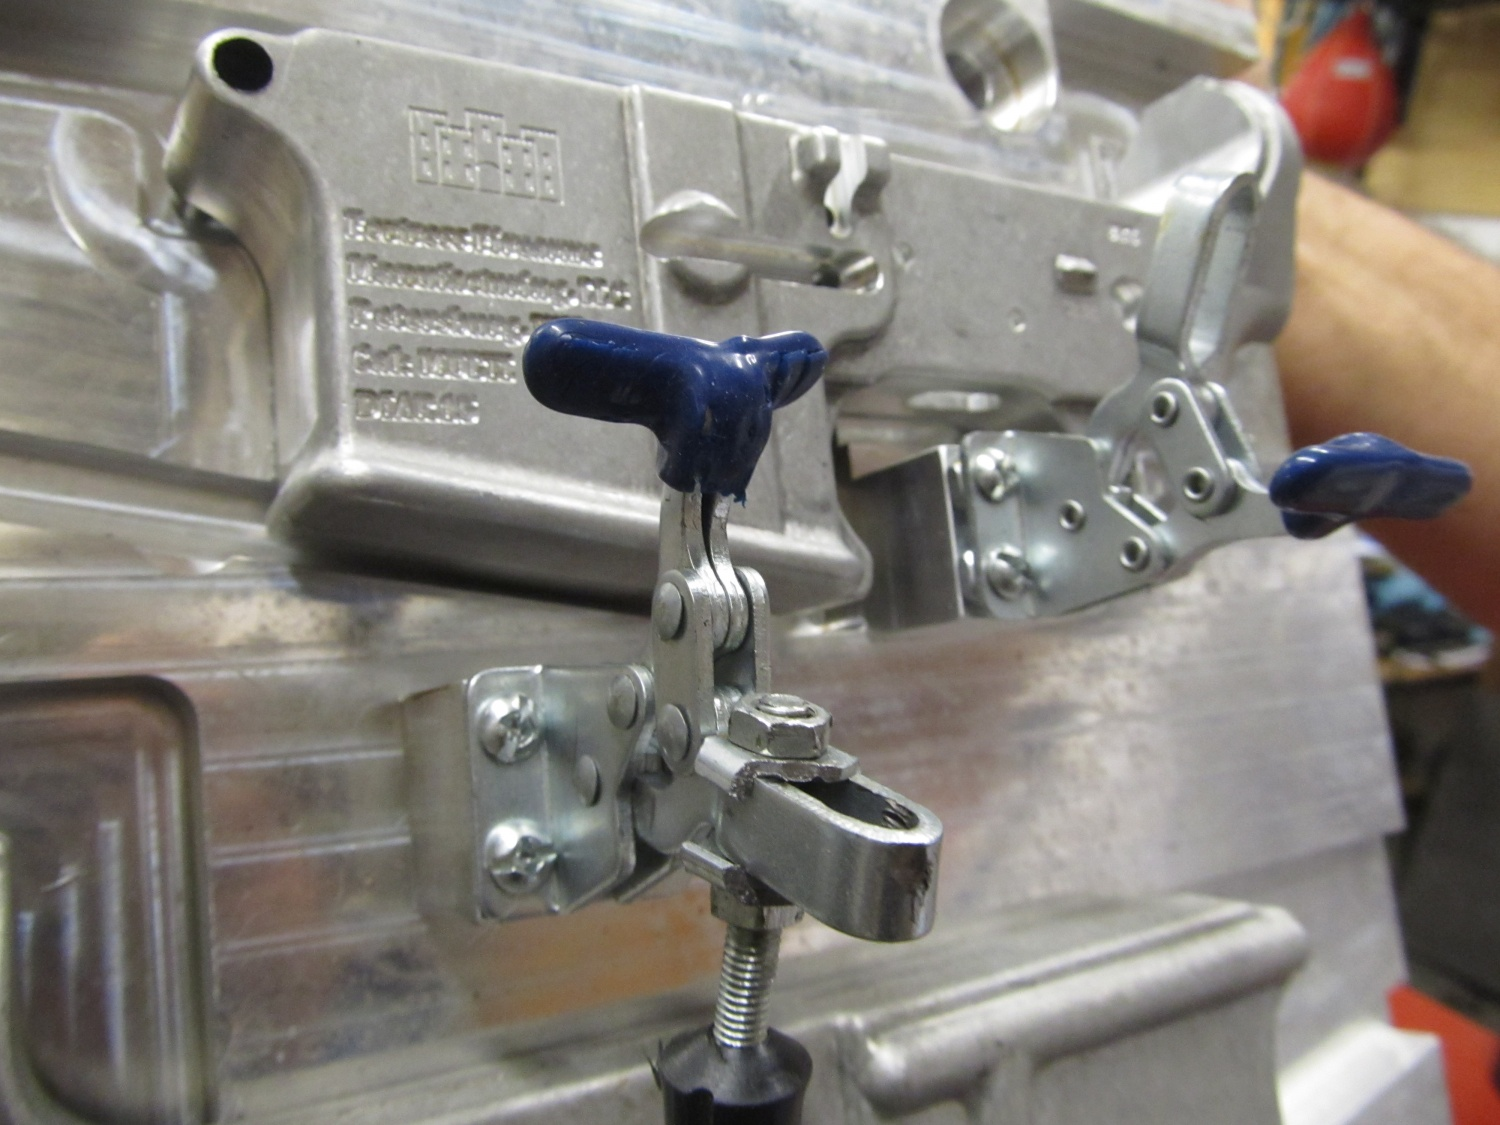 Some of the jigs the company uses to hold the receiver in place.